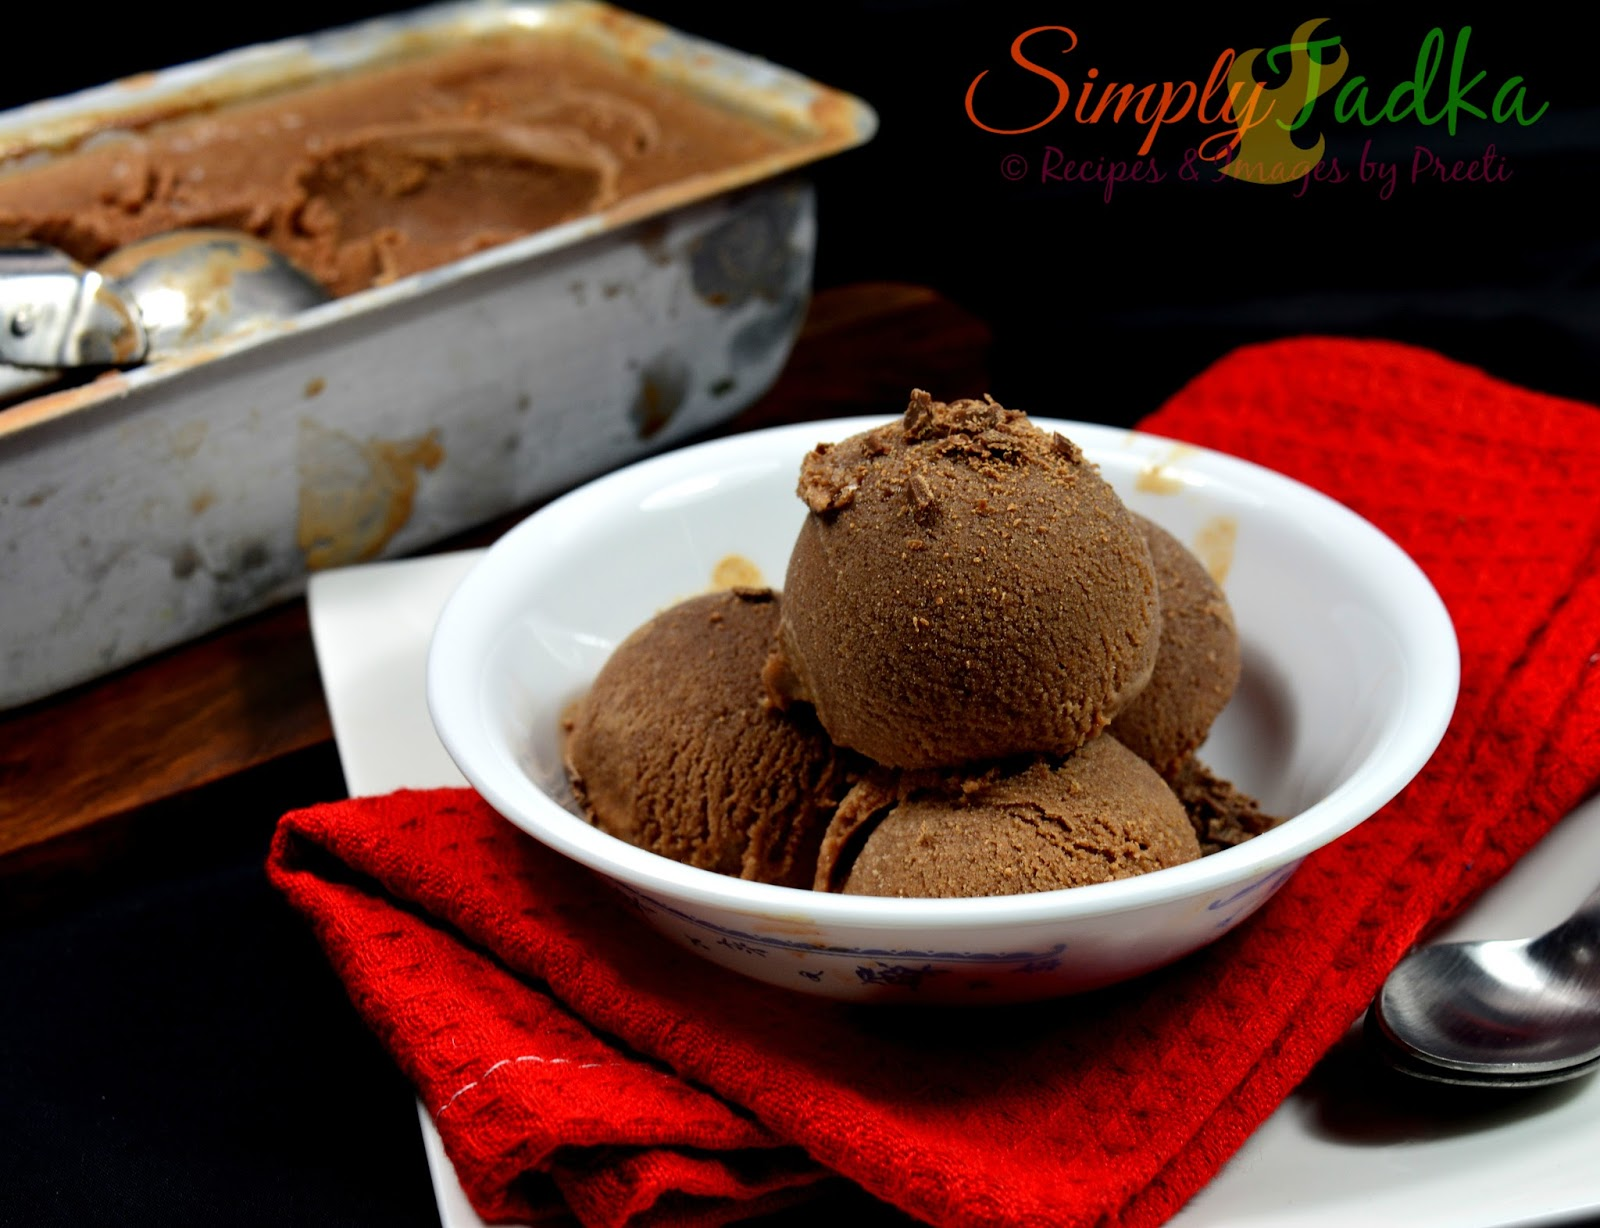 Ginger chocolate ice cream eggless ginger chocolate ice cream an interesting twist i added flavor of ginger in ice cream with chocolate love the flavor of ginger with chocolate if you not ginger person then avoid ccuart Gallery